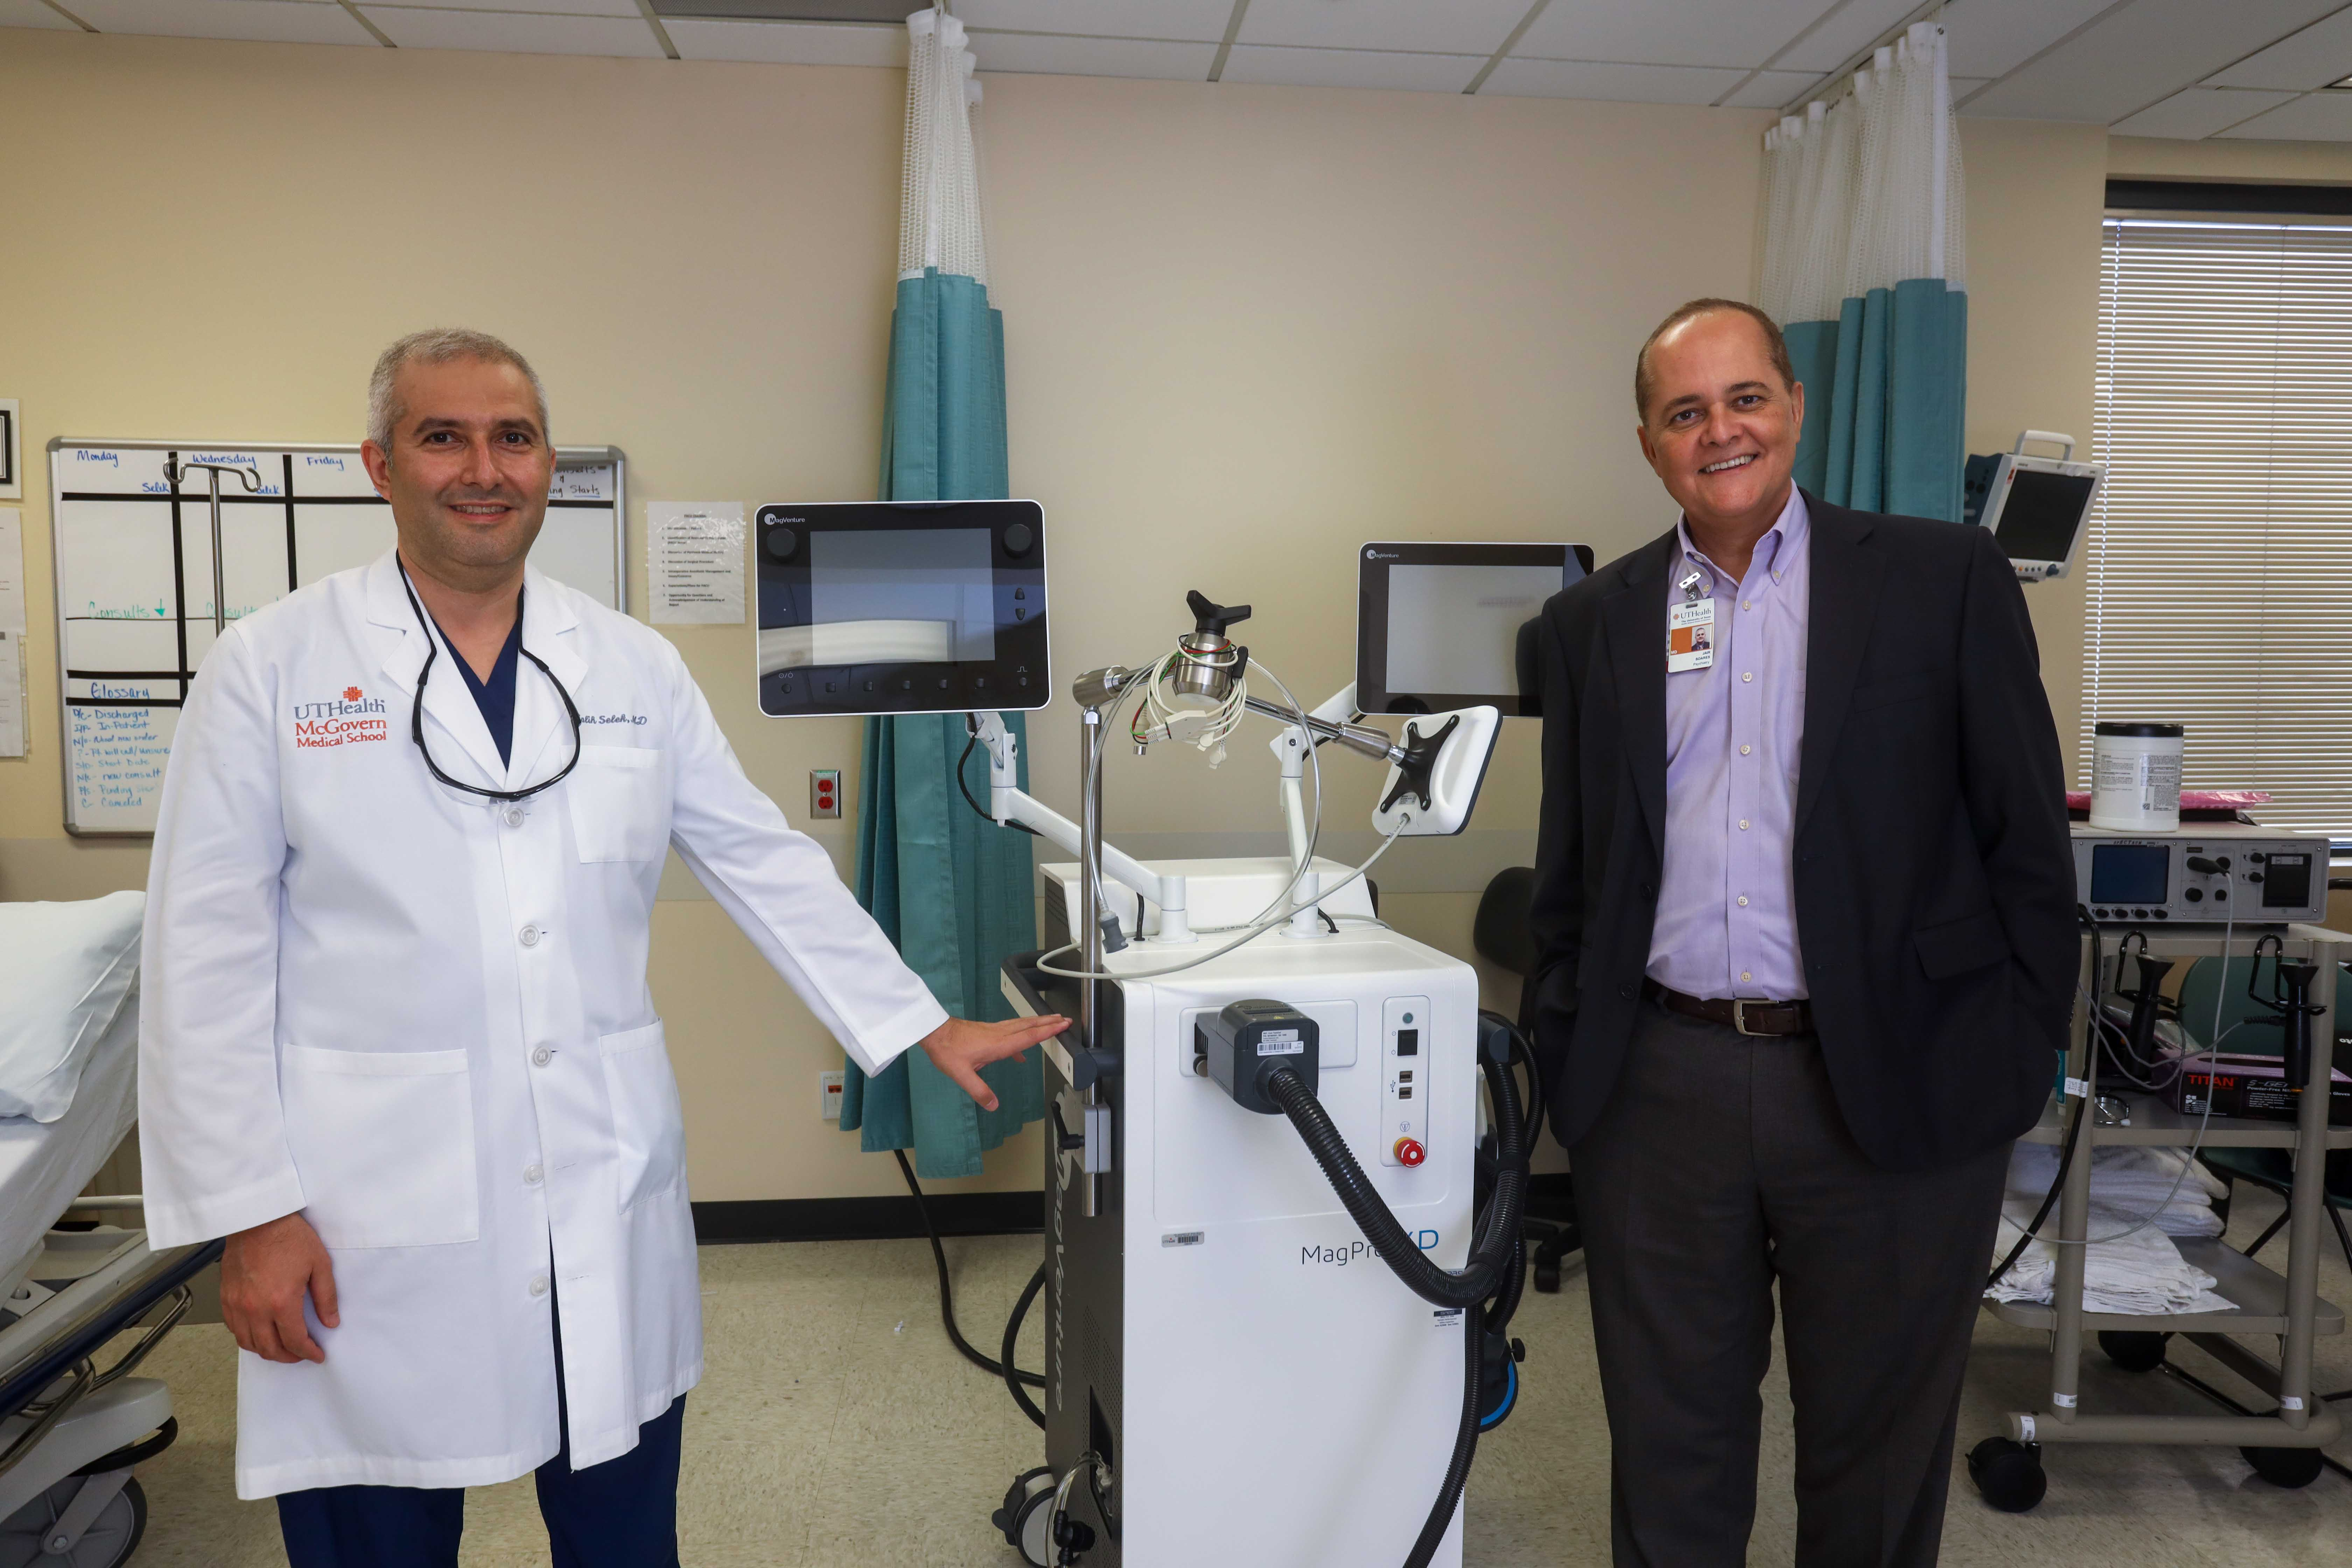 Photo of Jair Soares, MD, PhD, and Salih Selek, MD